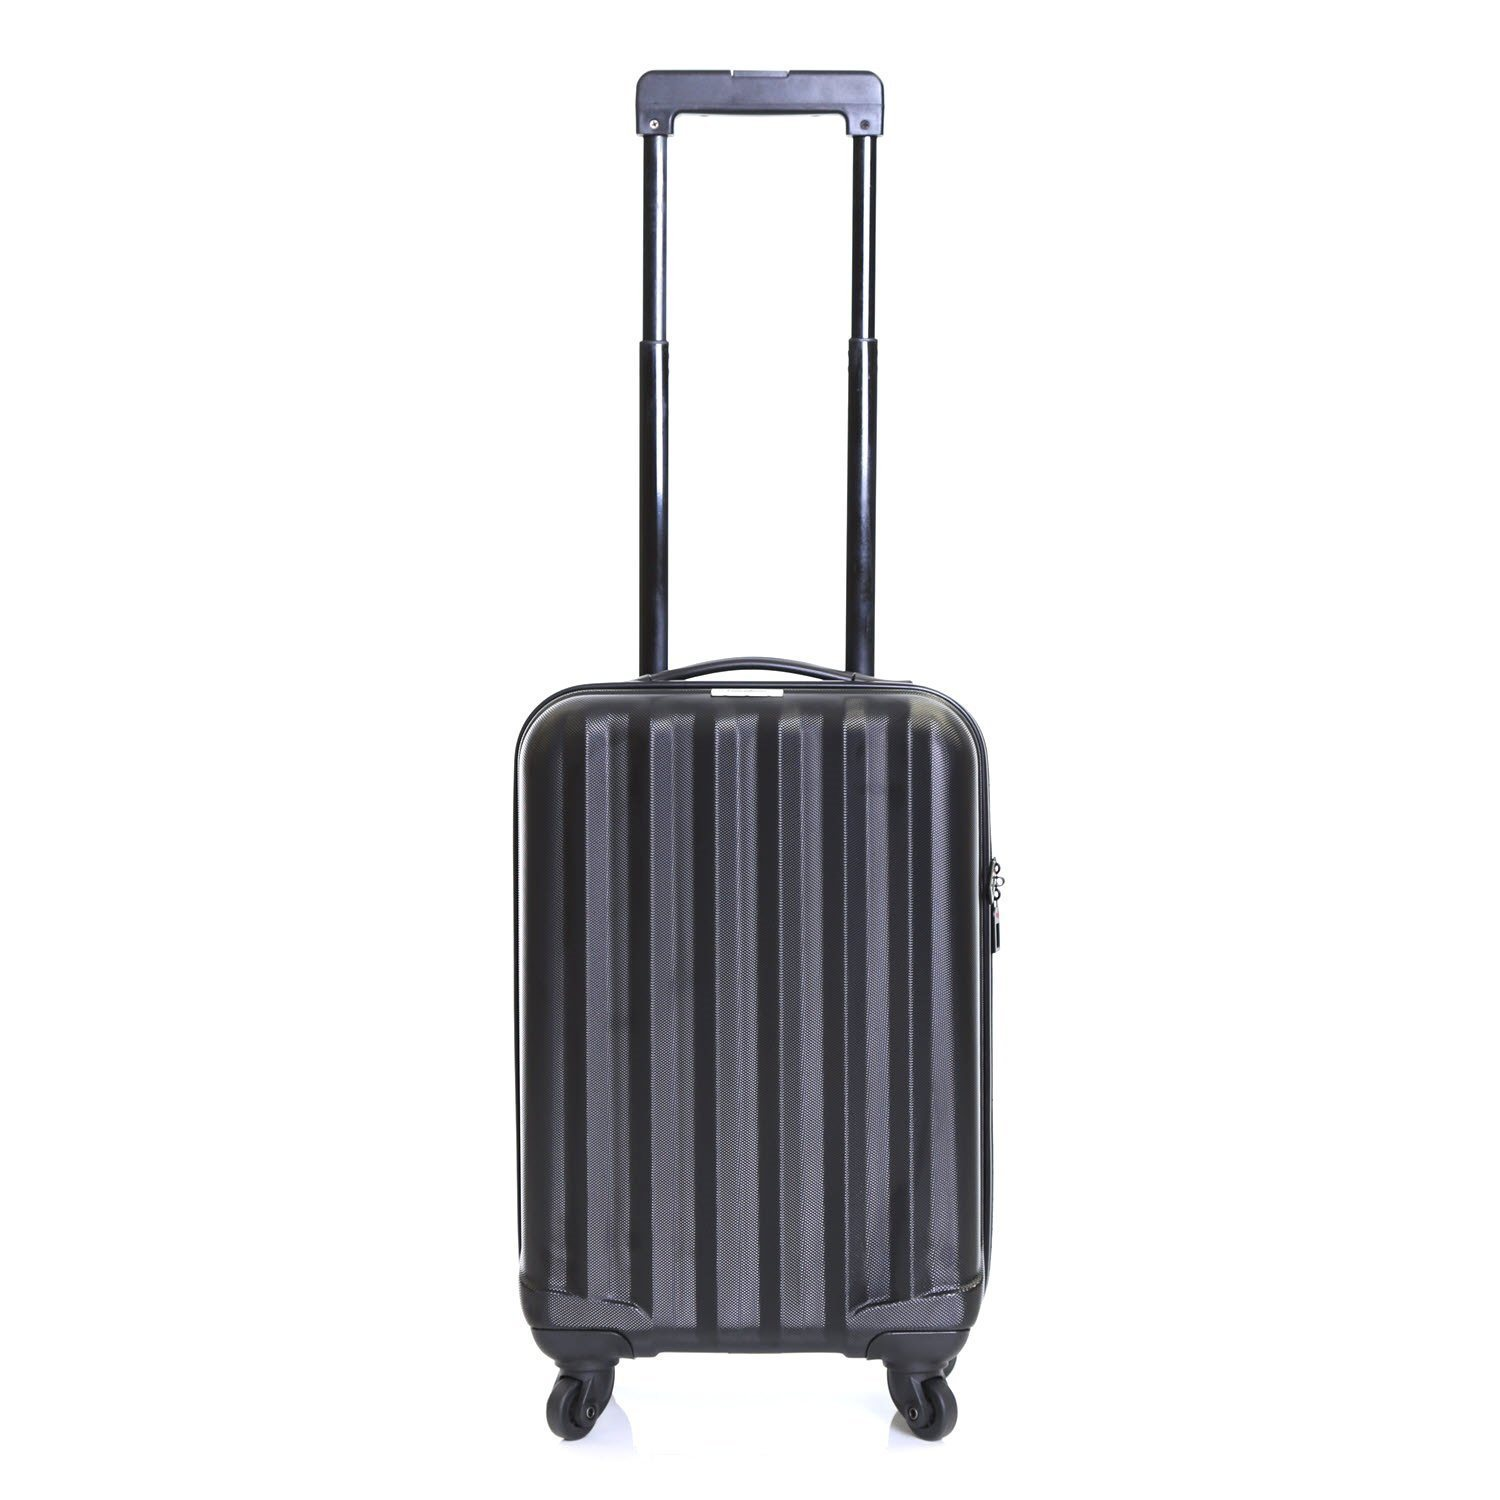 Karabar Monaco Cabin Suitcase Uk Review Luggage News